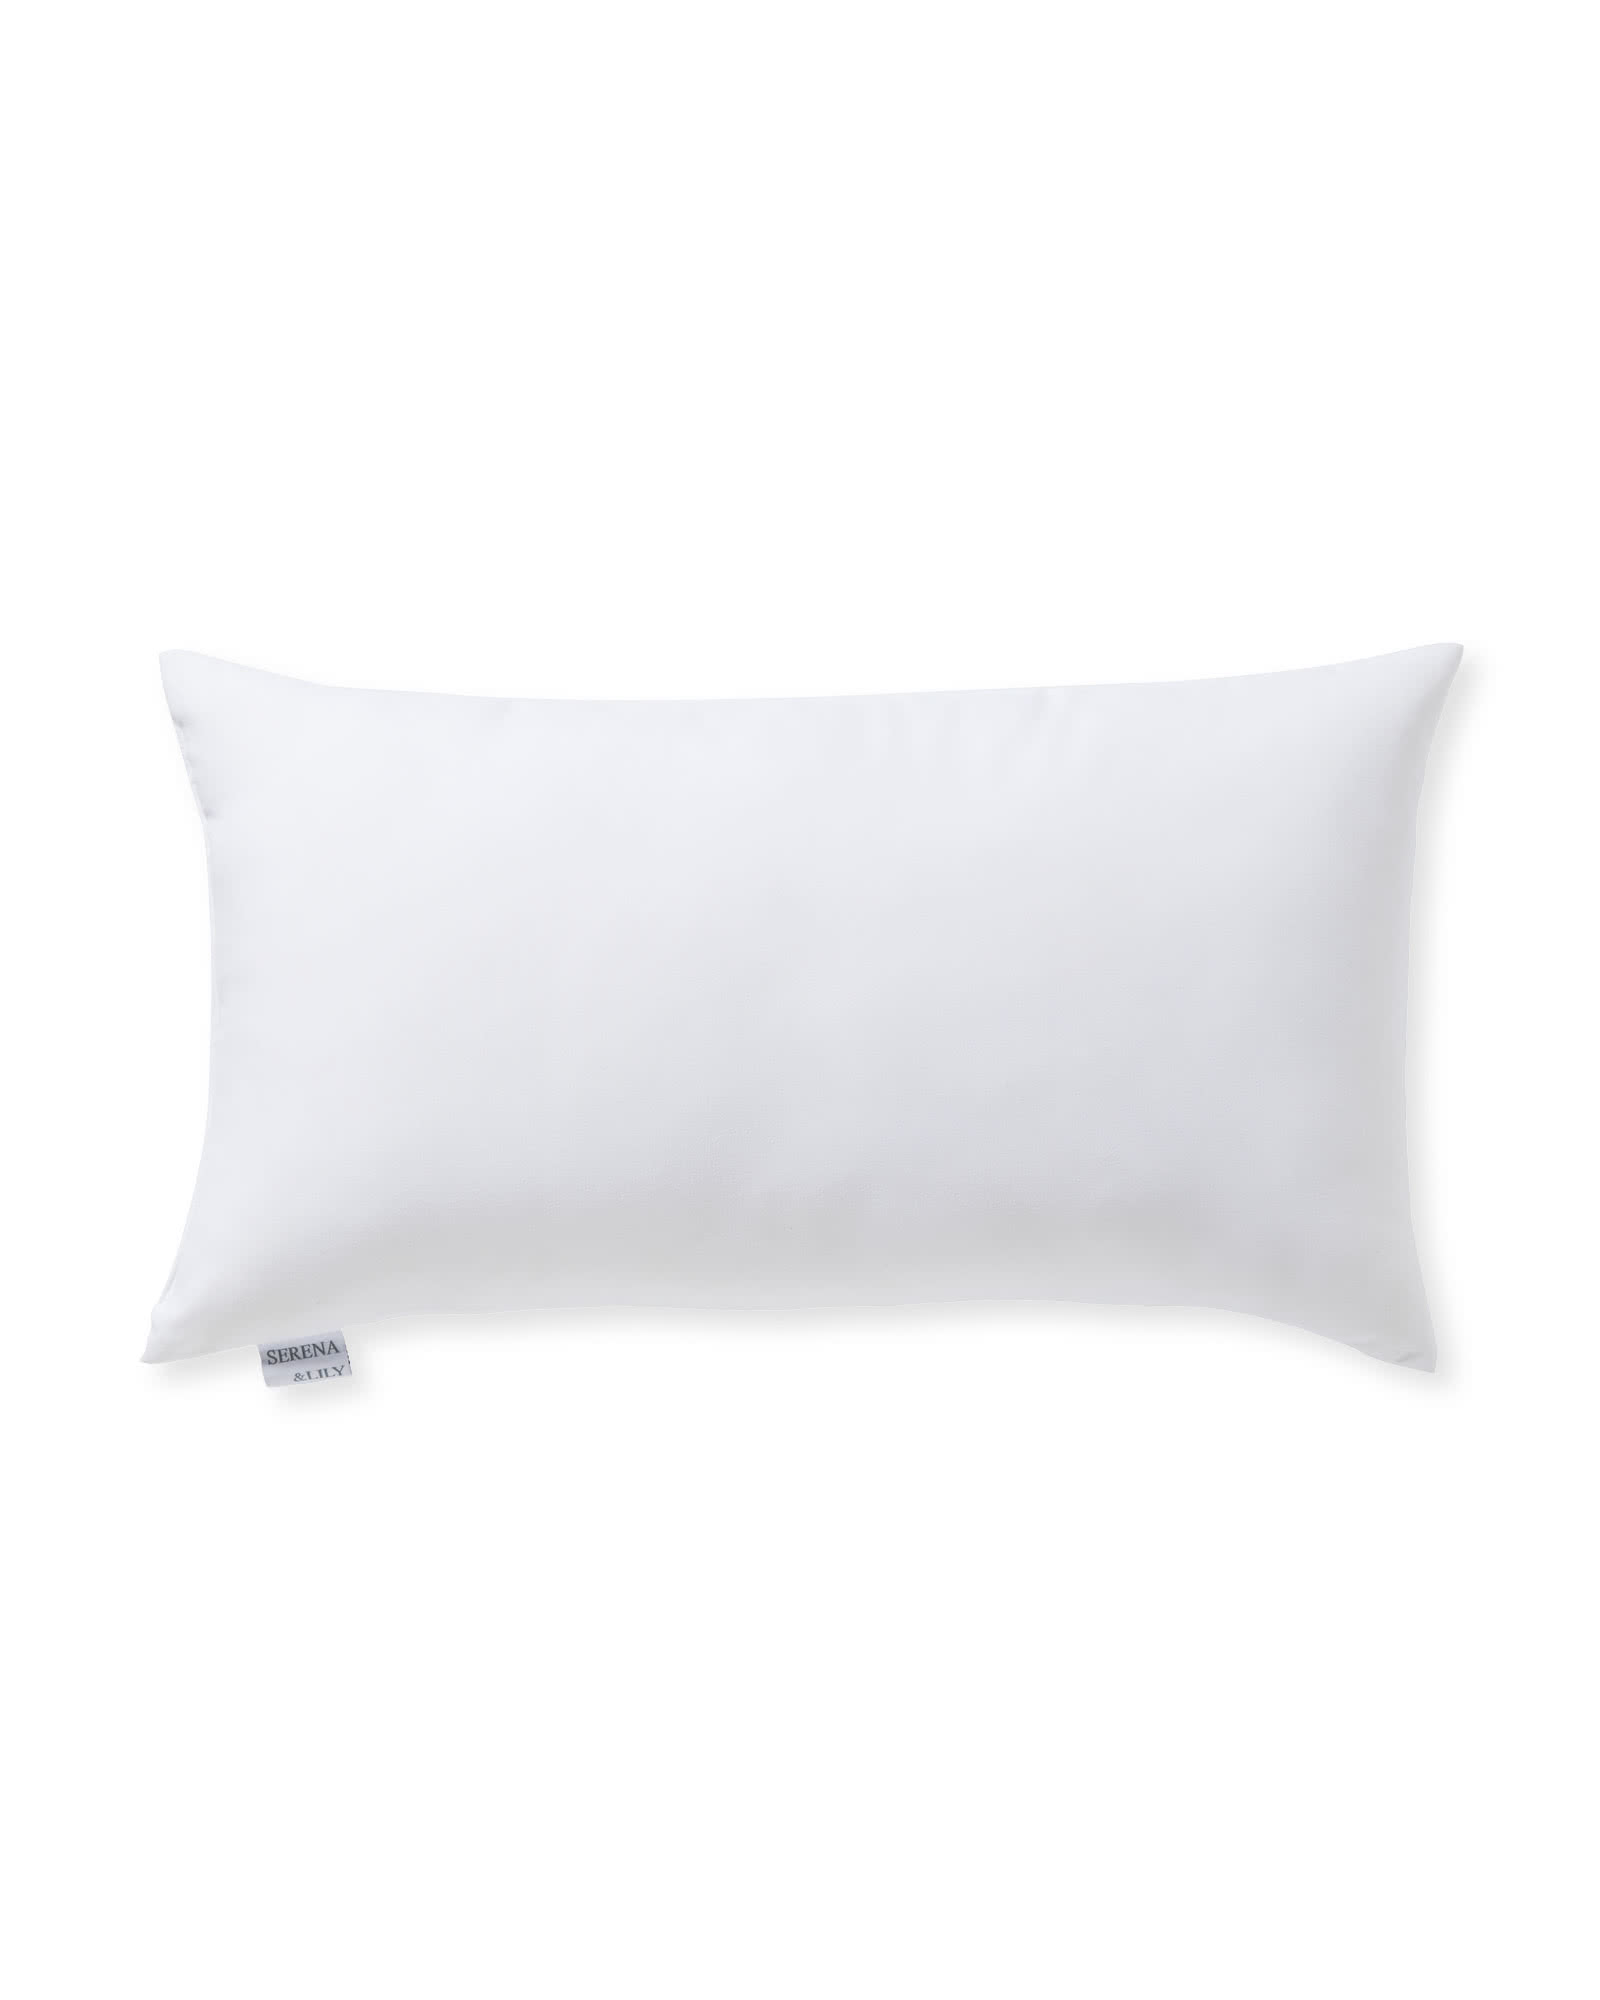 outdoor pillow inserts